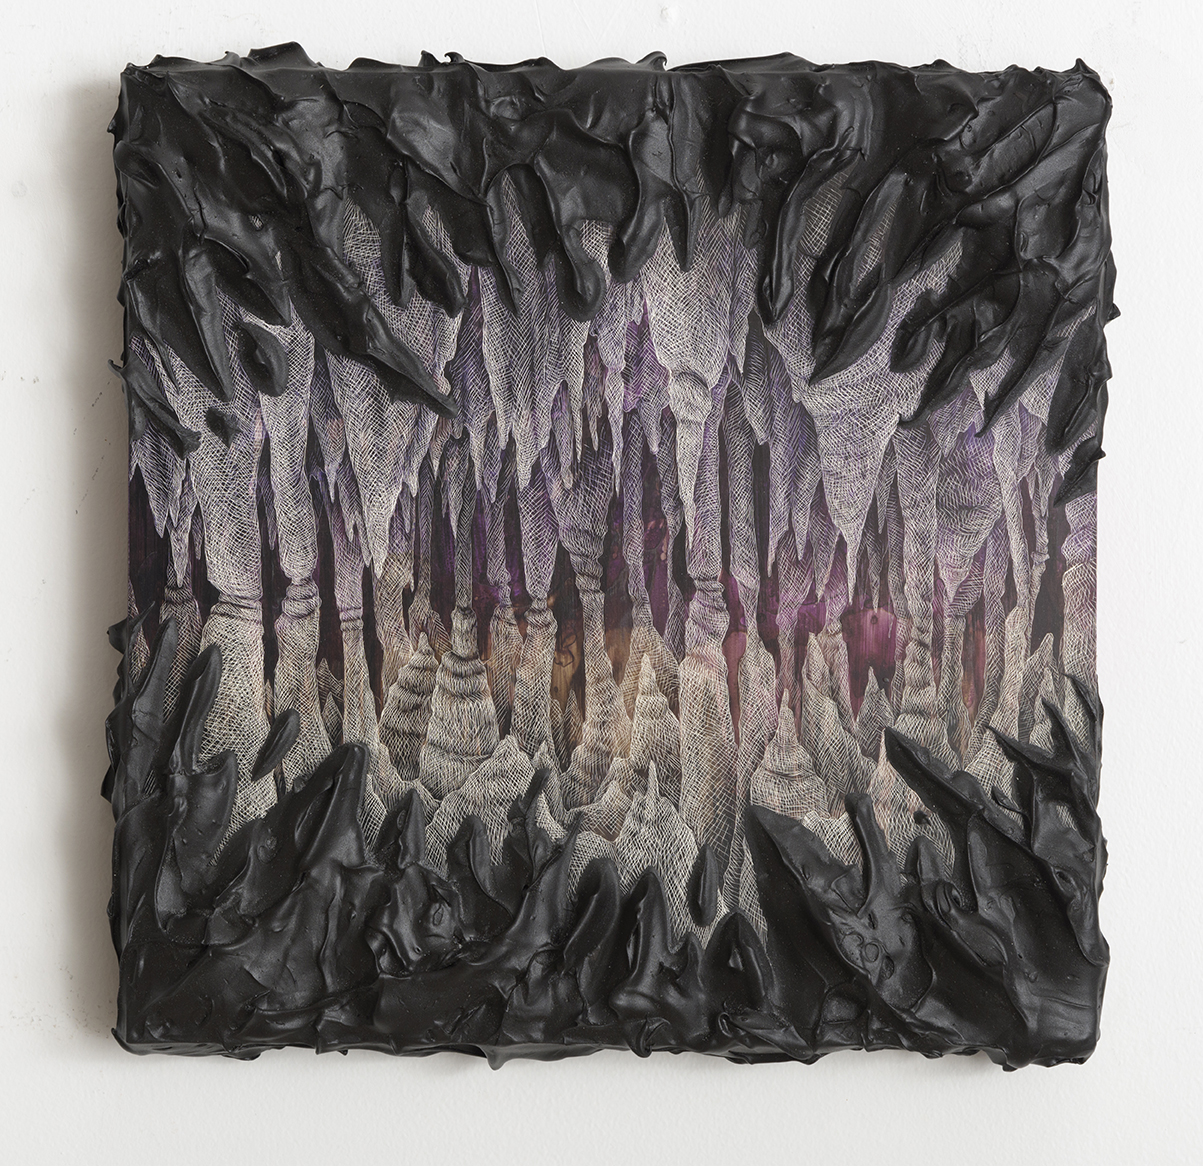 Kelly Berg  The Violet Underground,  2016 Acrylic, ink and and scratchboard technique on Clayboad 12 x 12 inches